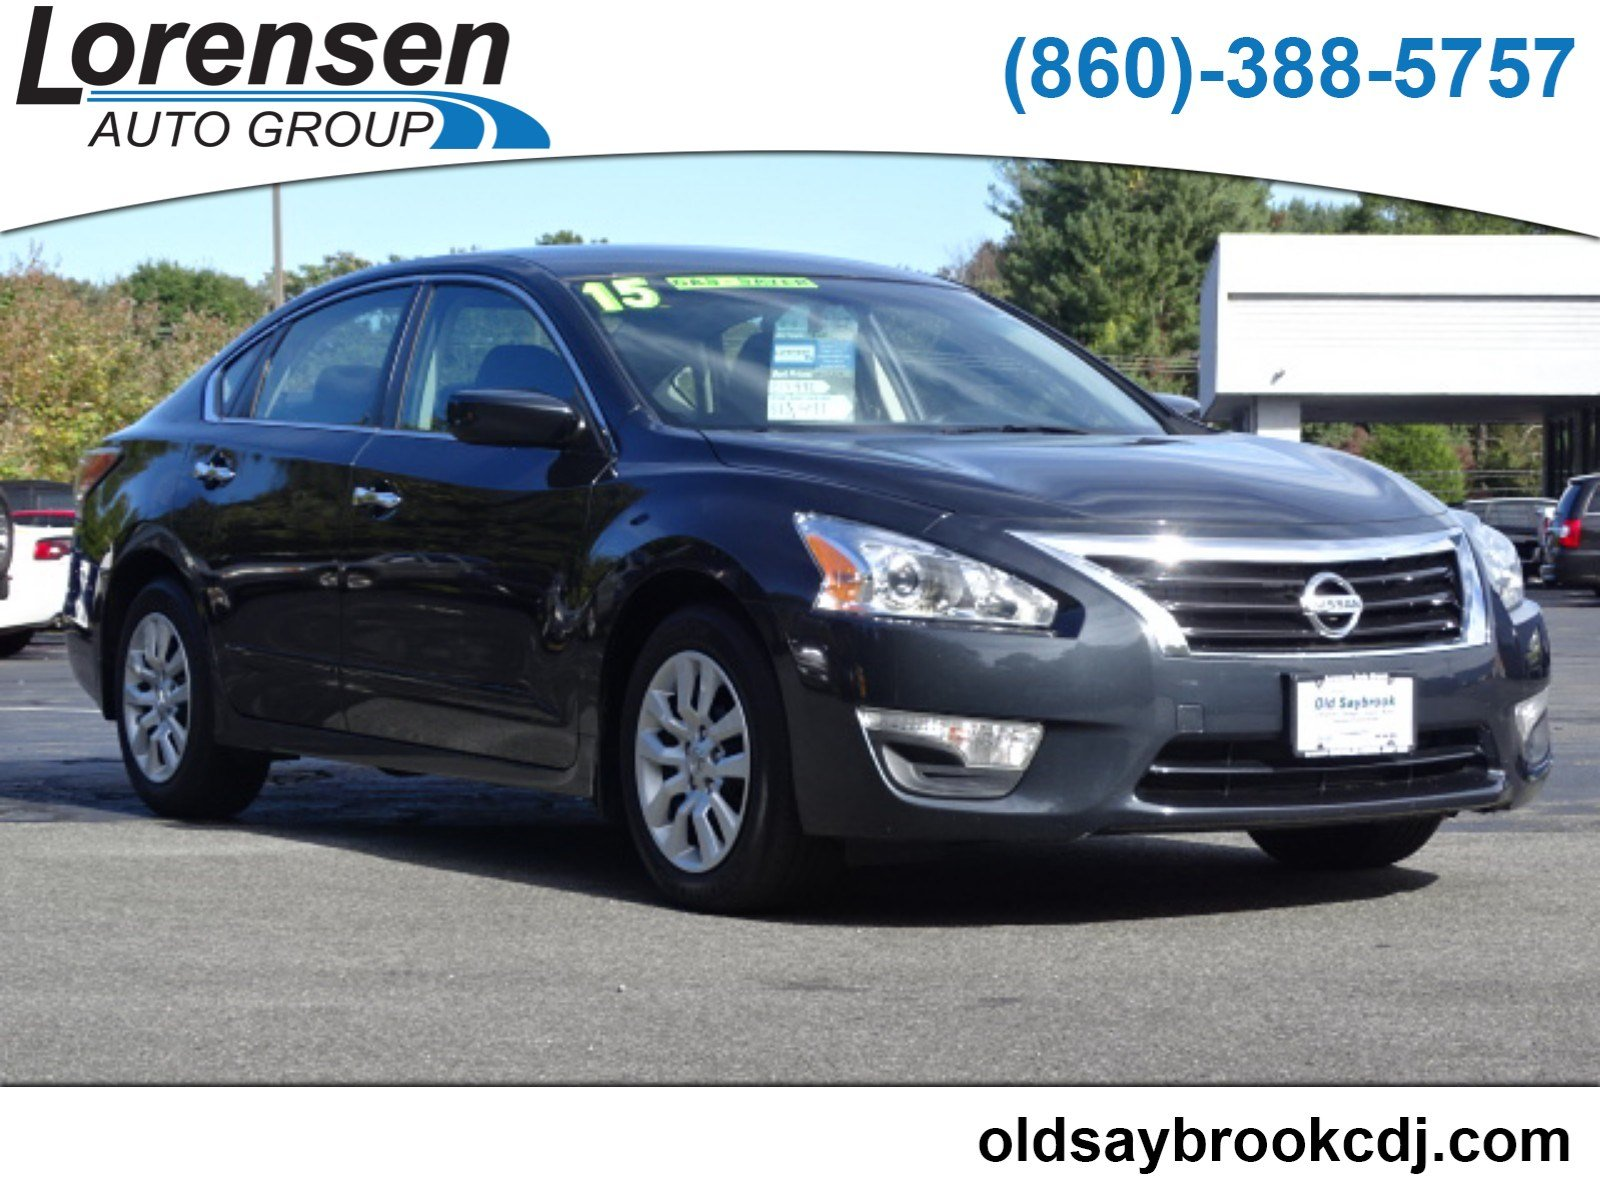 Lovely Pre Owned 2015 Nissan Altima 2.5 S